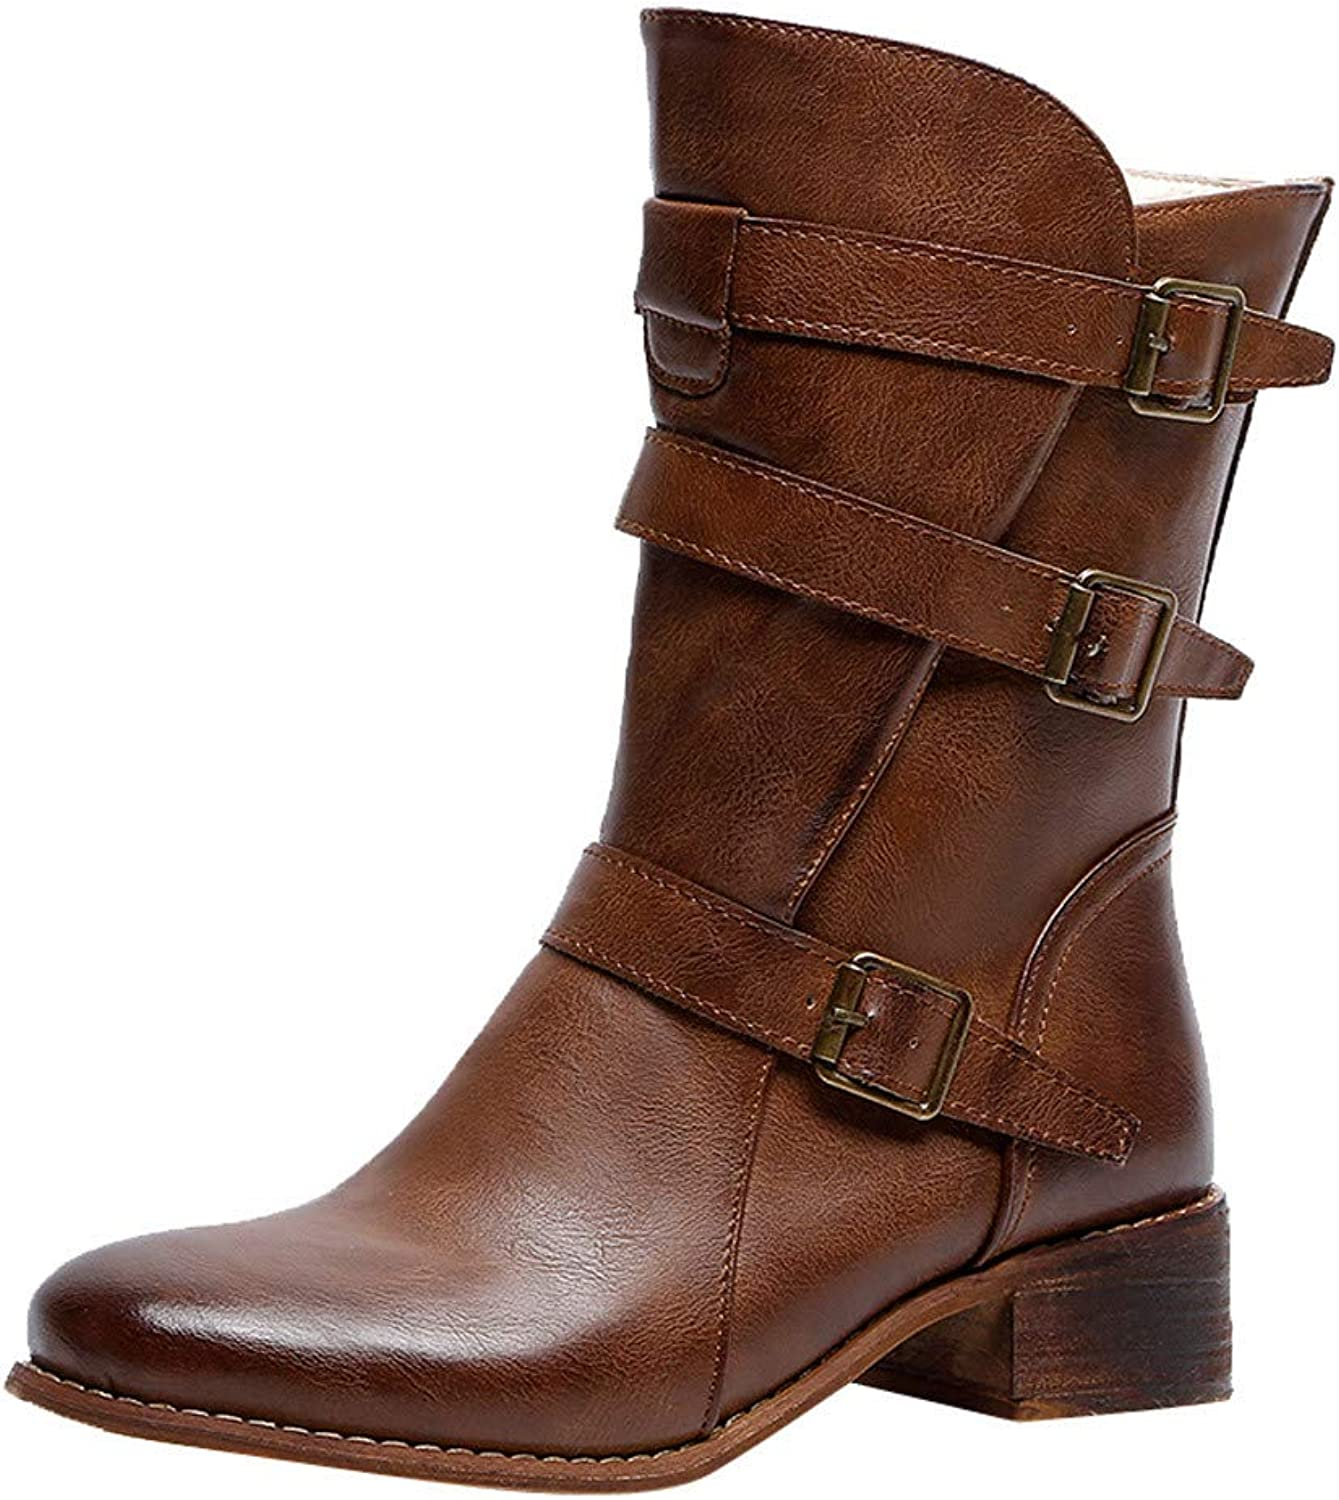 Anxinke Ladies Leather Buckle Strap Zipper Casual Boots